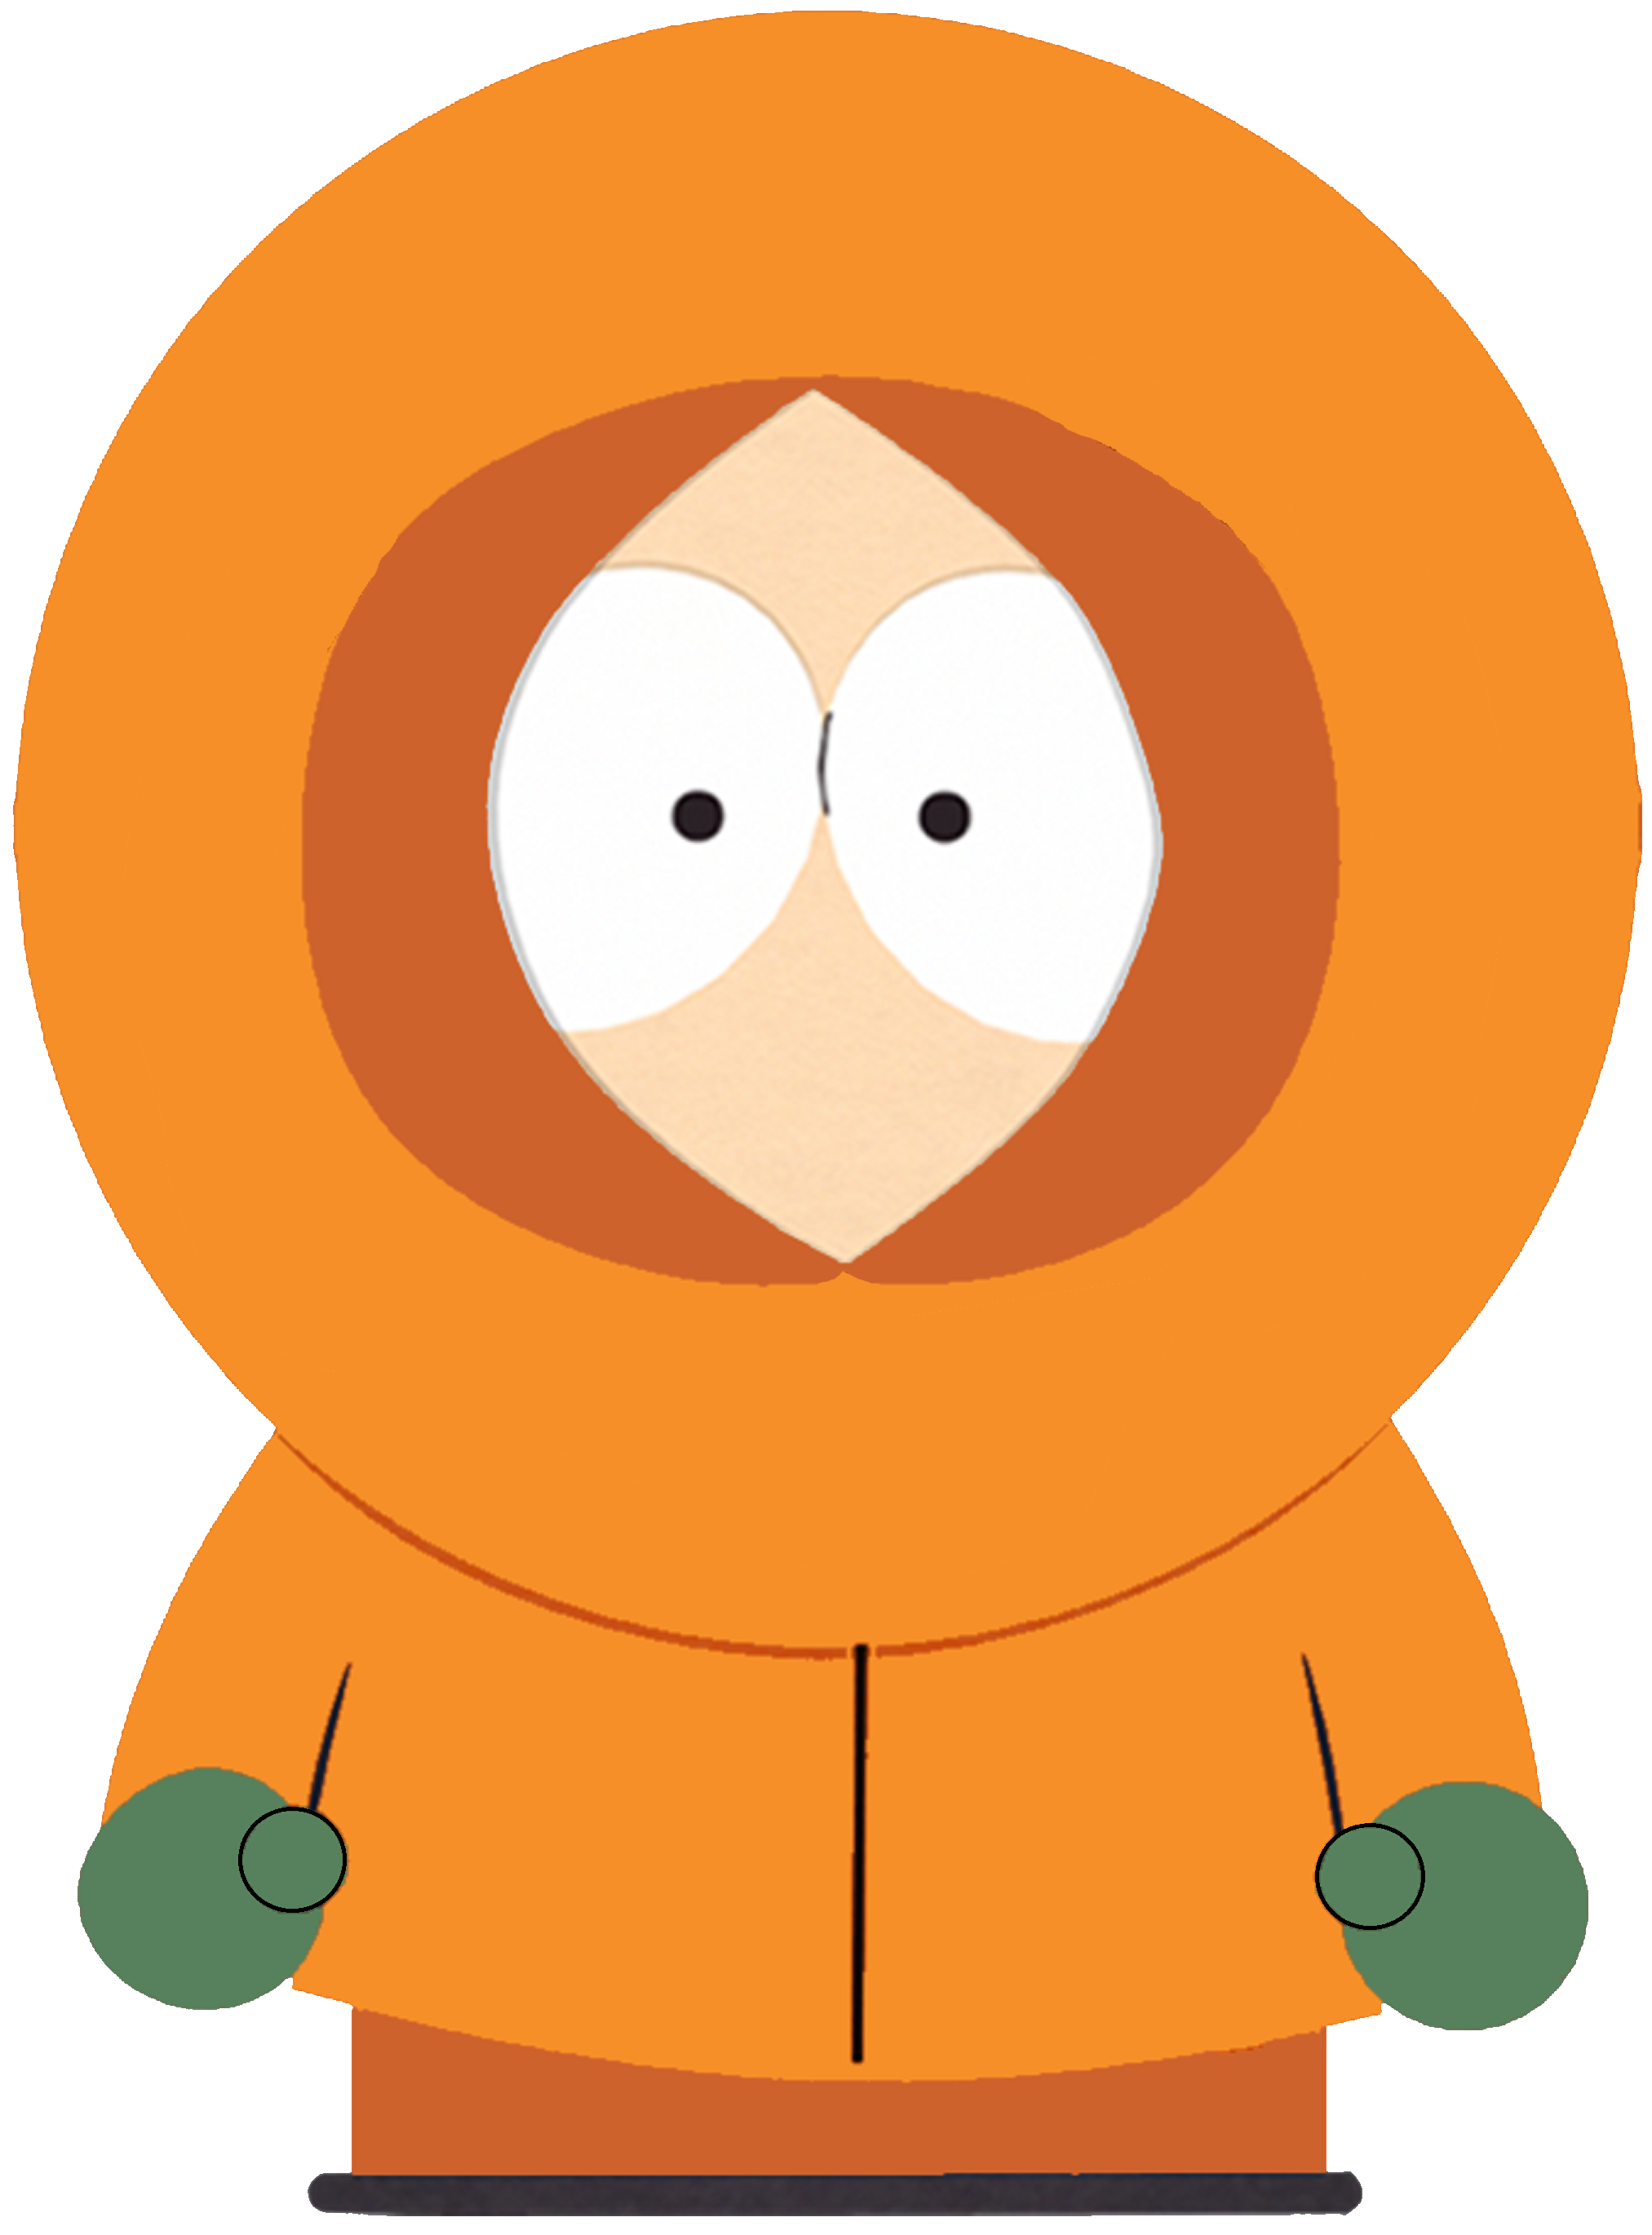 Animal Electrocuted Porn kenny mccormick | south park archives | fandom